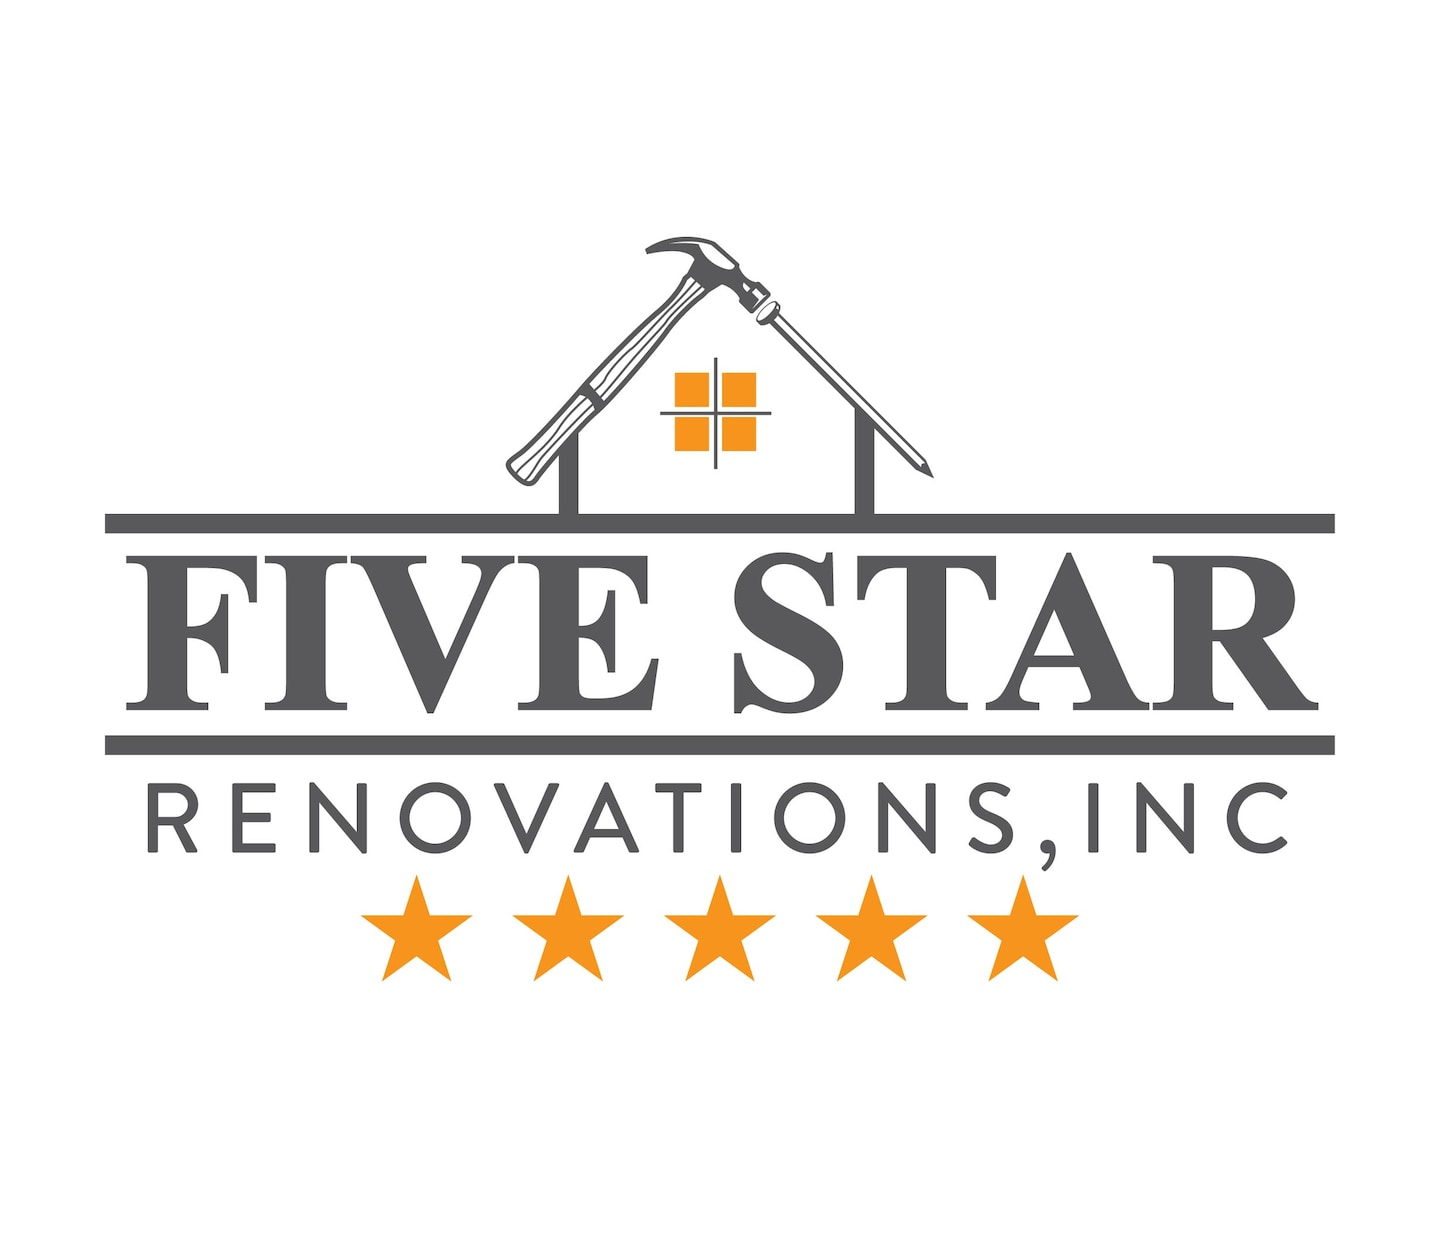 Five Star Renovation